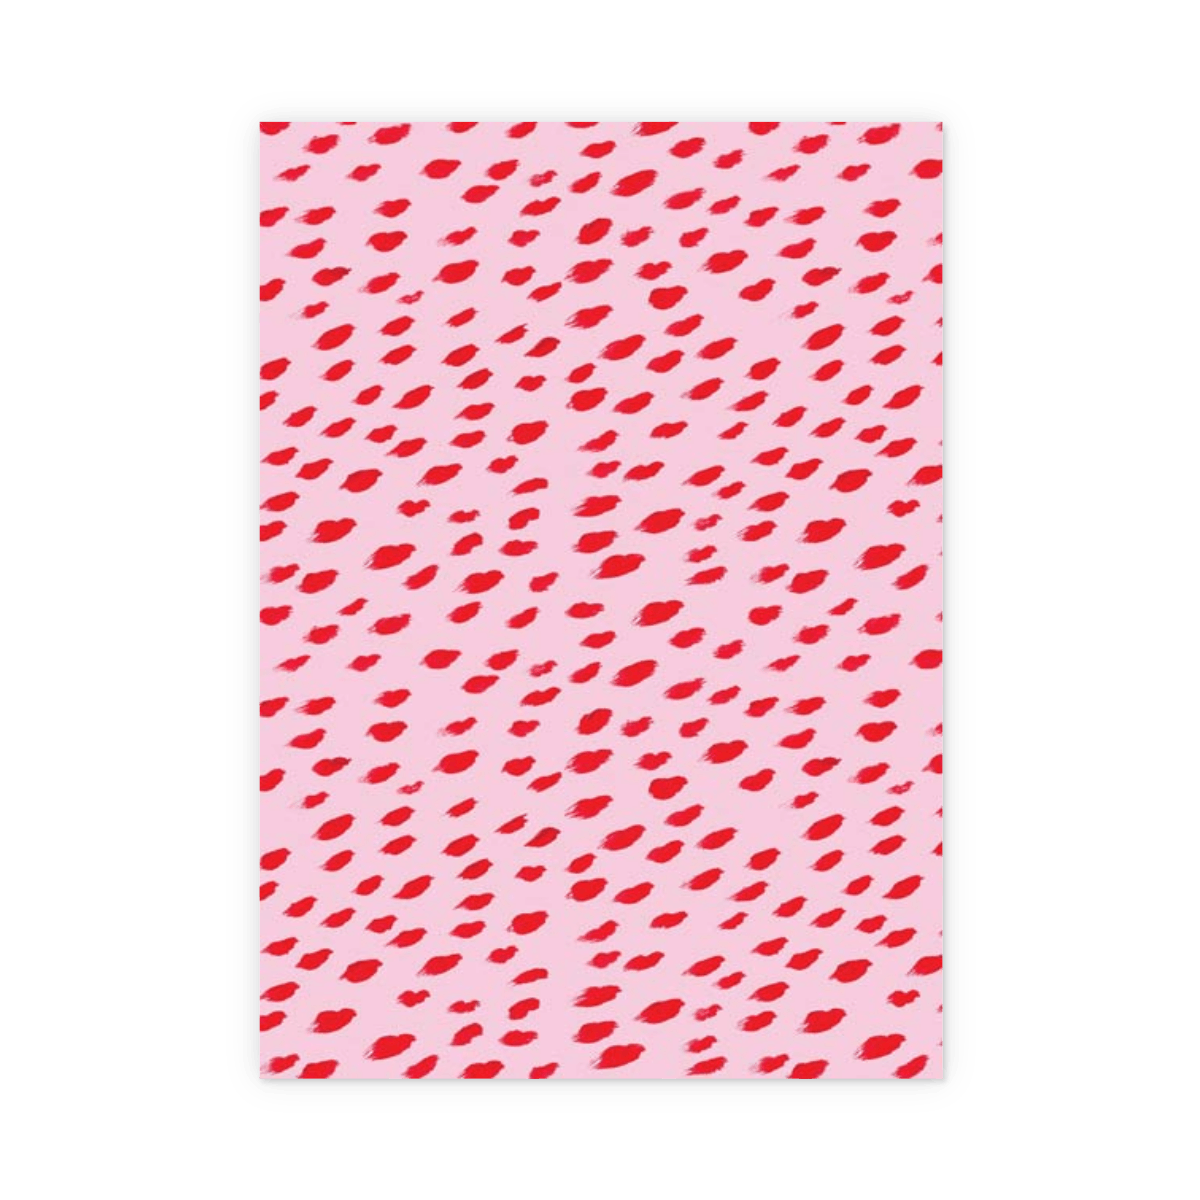 Https%3a%2f%2fwww.papier.com%2fproduct image%2f5223%2f4%2fludo pink 1360 arriere 1458651467.png?ixlib=rb 1.1